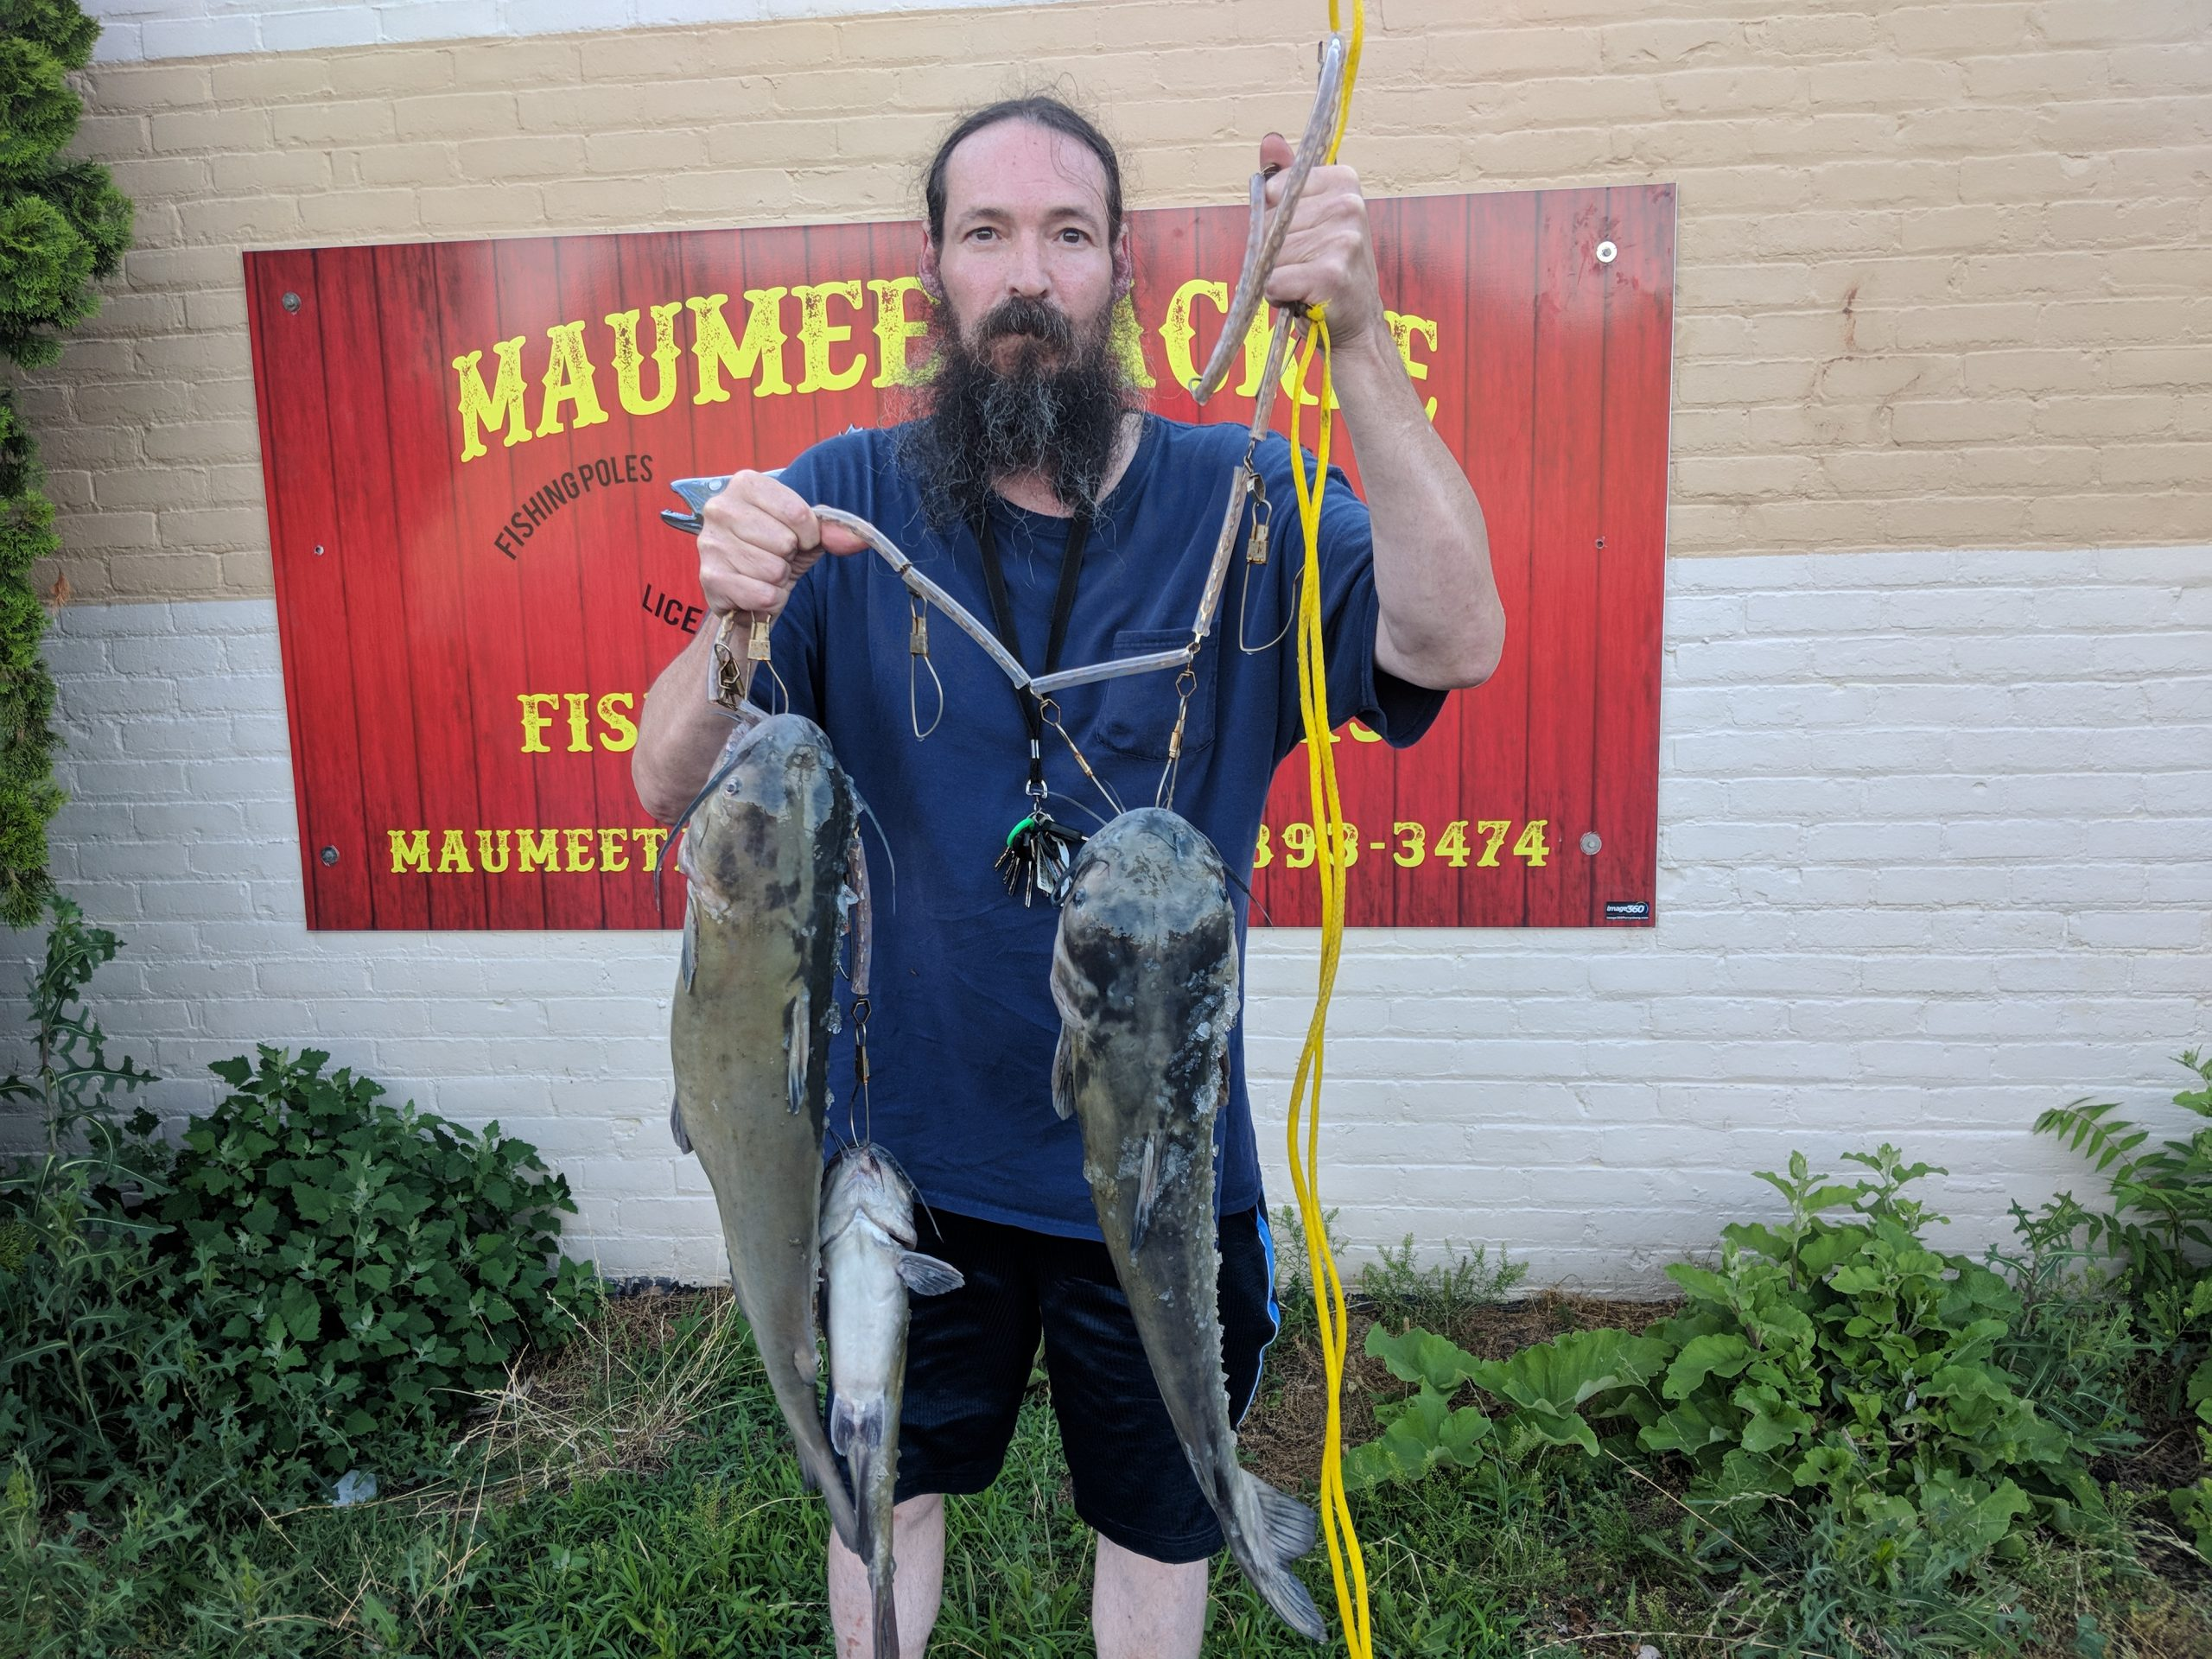 Maumee river report-june 26, 2020